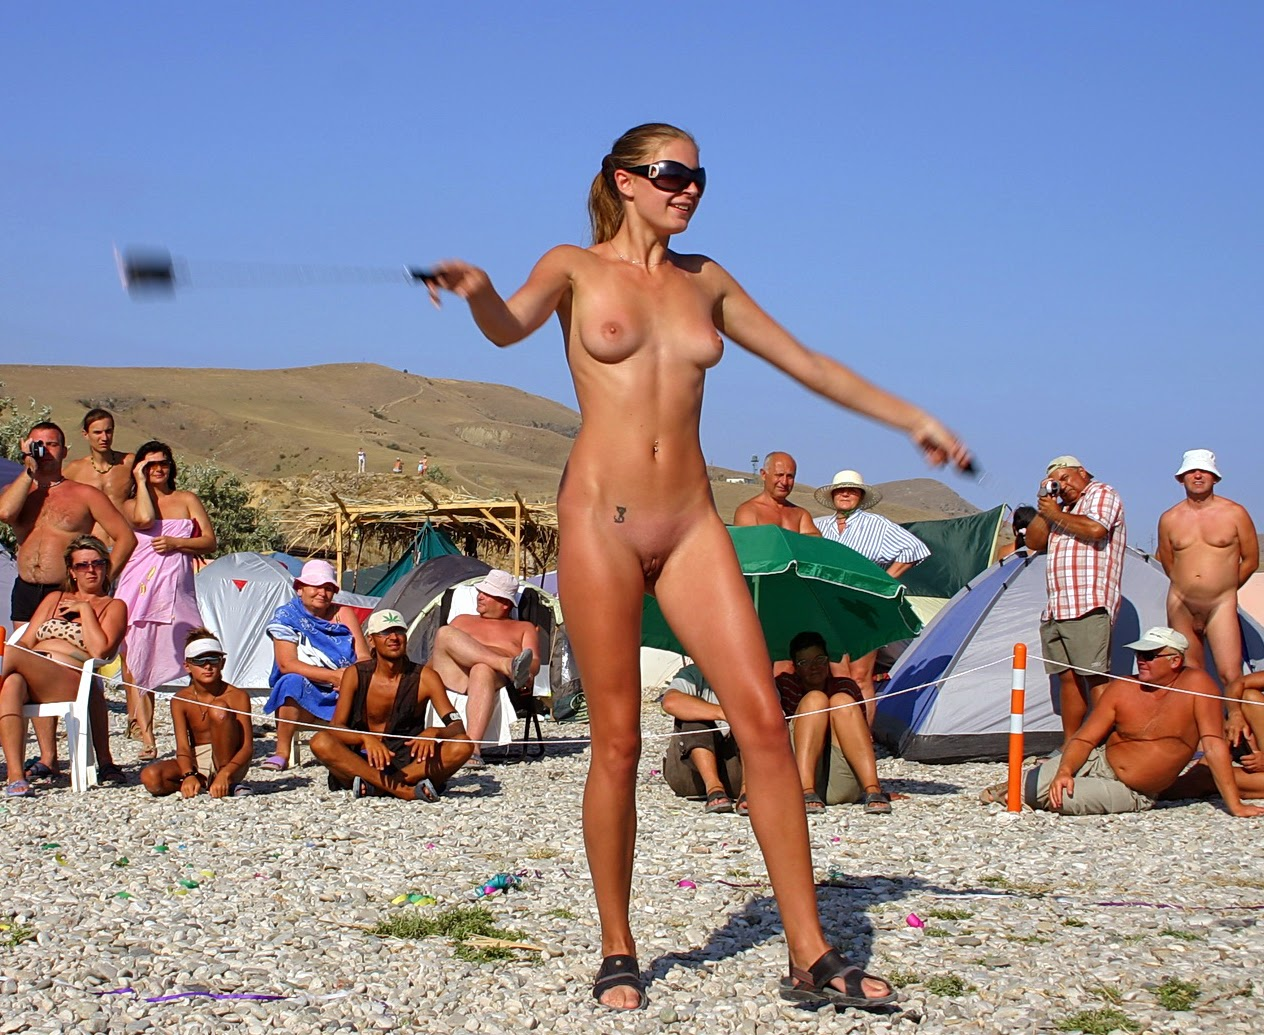 nudism   photo   hq family nudism   black sea beach